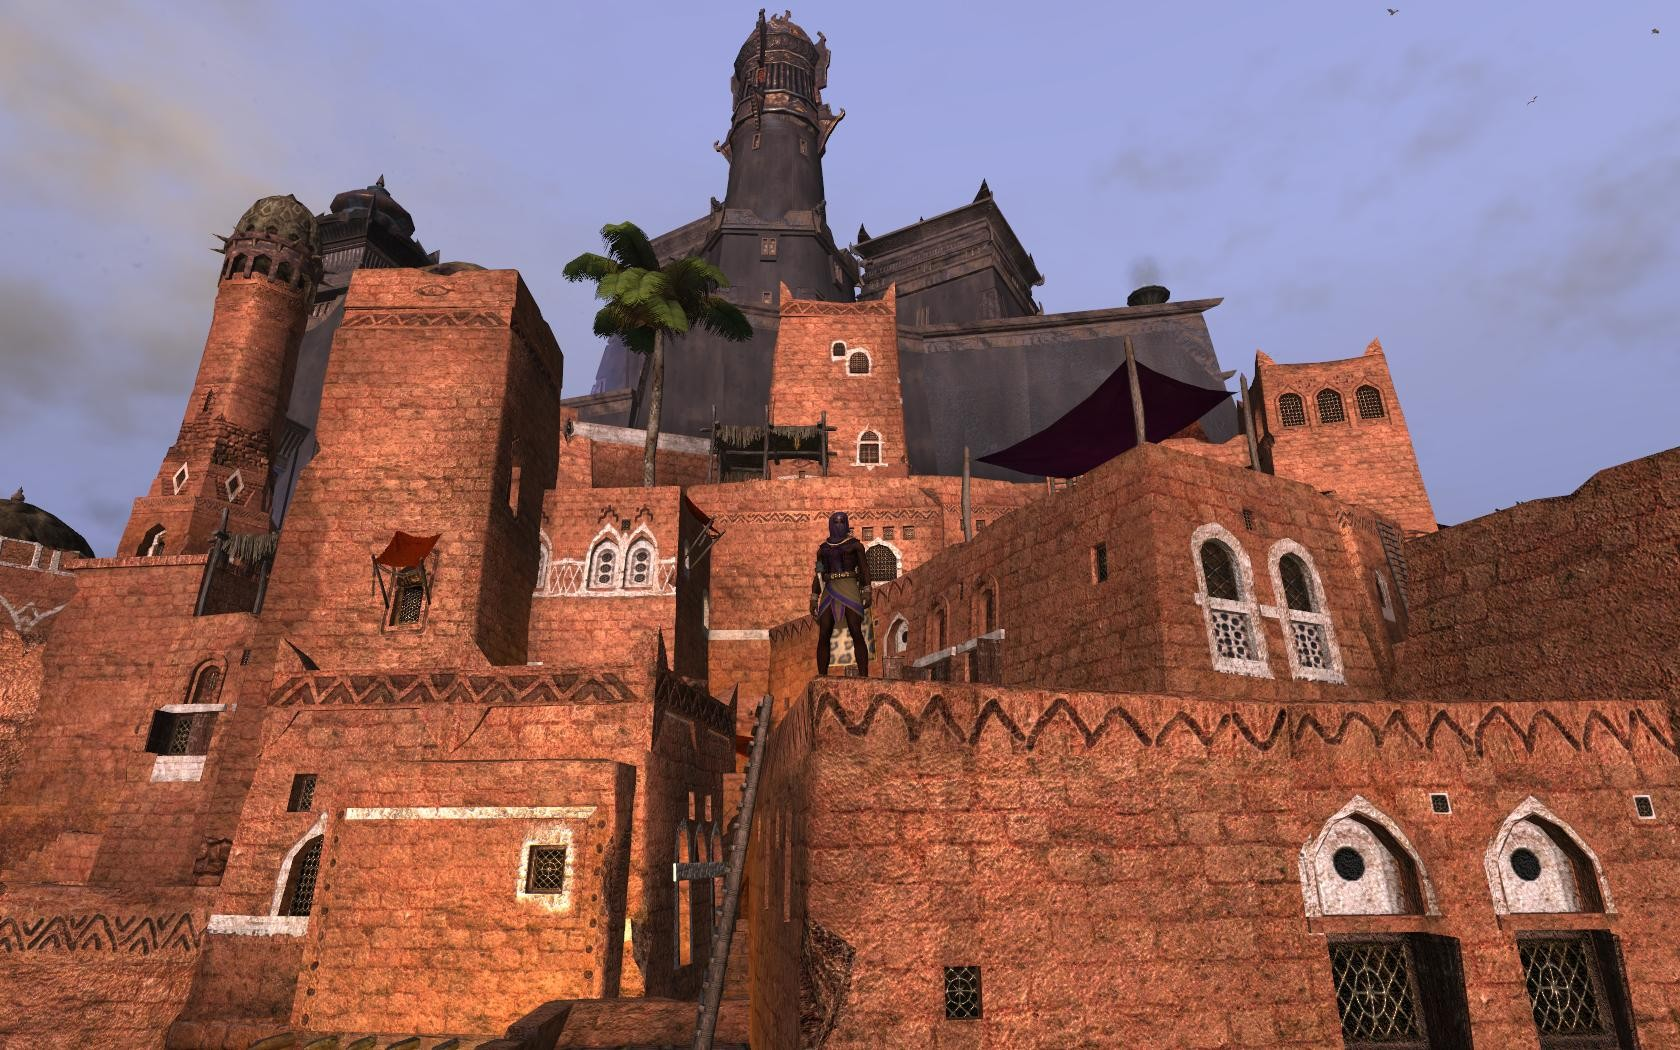 Age of Conan: Unchained - 21 Assassin on a roof in Khemi